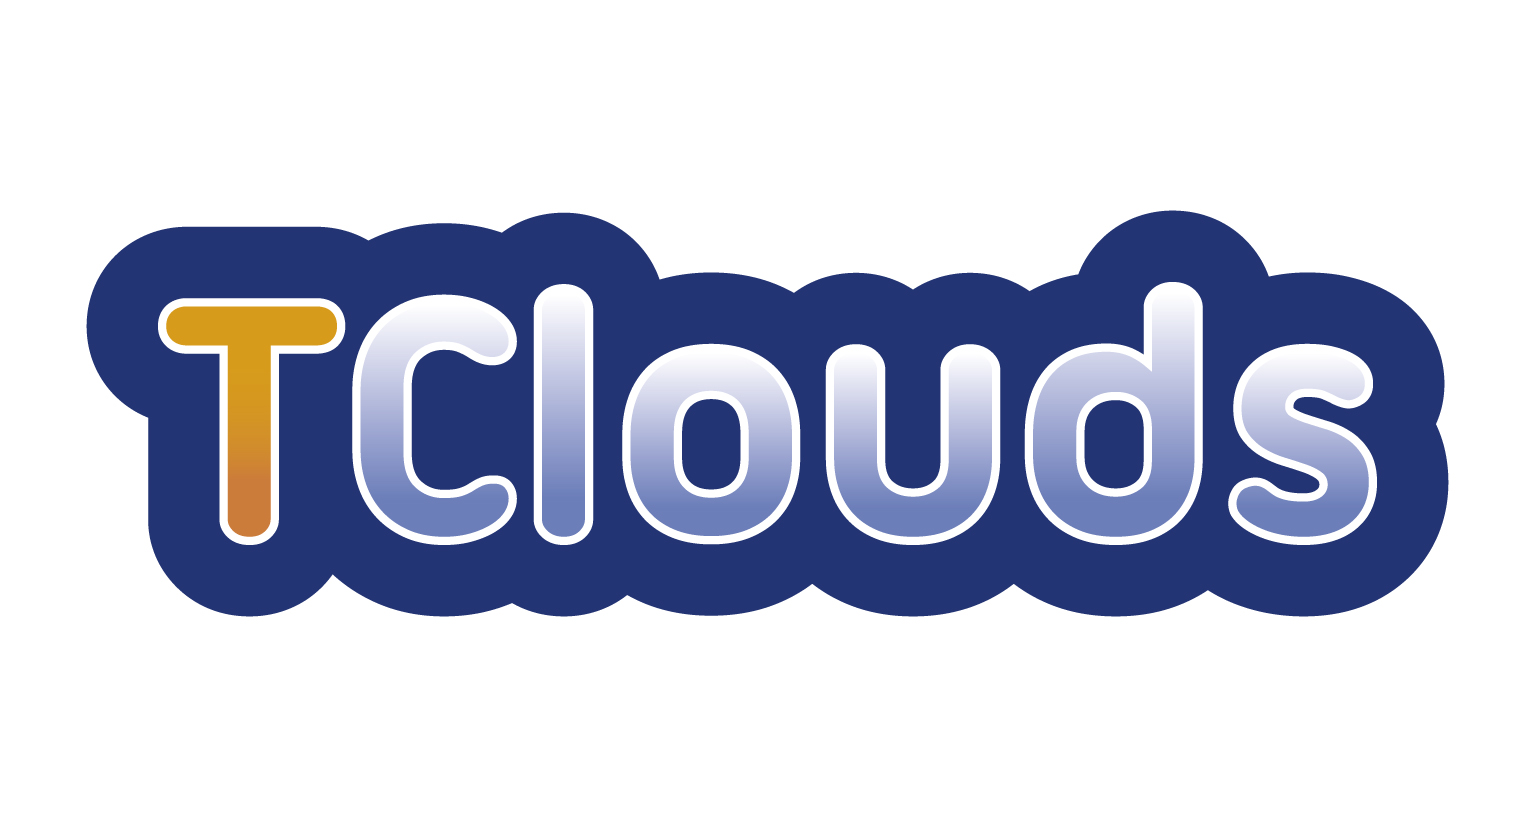 Supported by TClouds